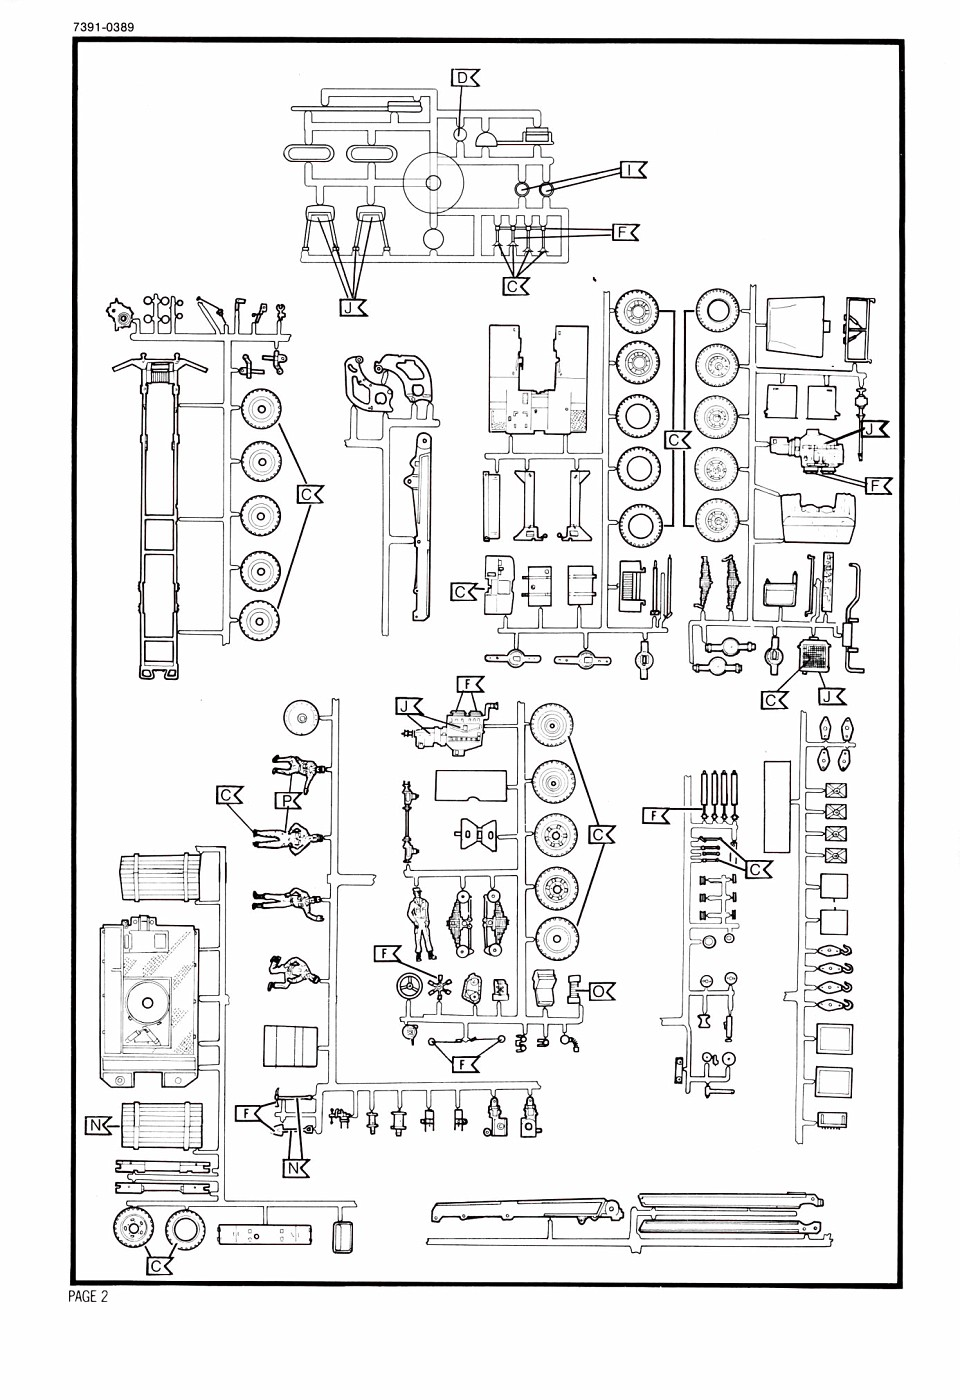 Peterbilt 320 Wiring Schematic further Trane Heat Pump Wiring Diagram besides Wiring Diagram 1982 Kenworth W900 moreover Kenworth w900 together with Kenworth W900b Wiring Diagram. on kenworth w900a